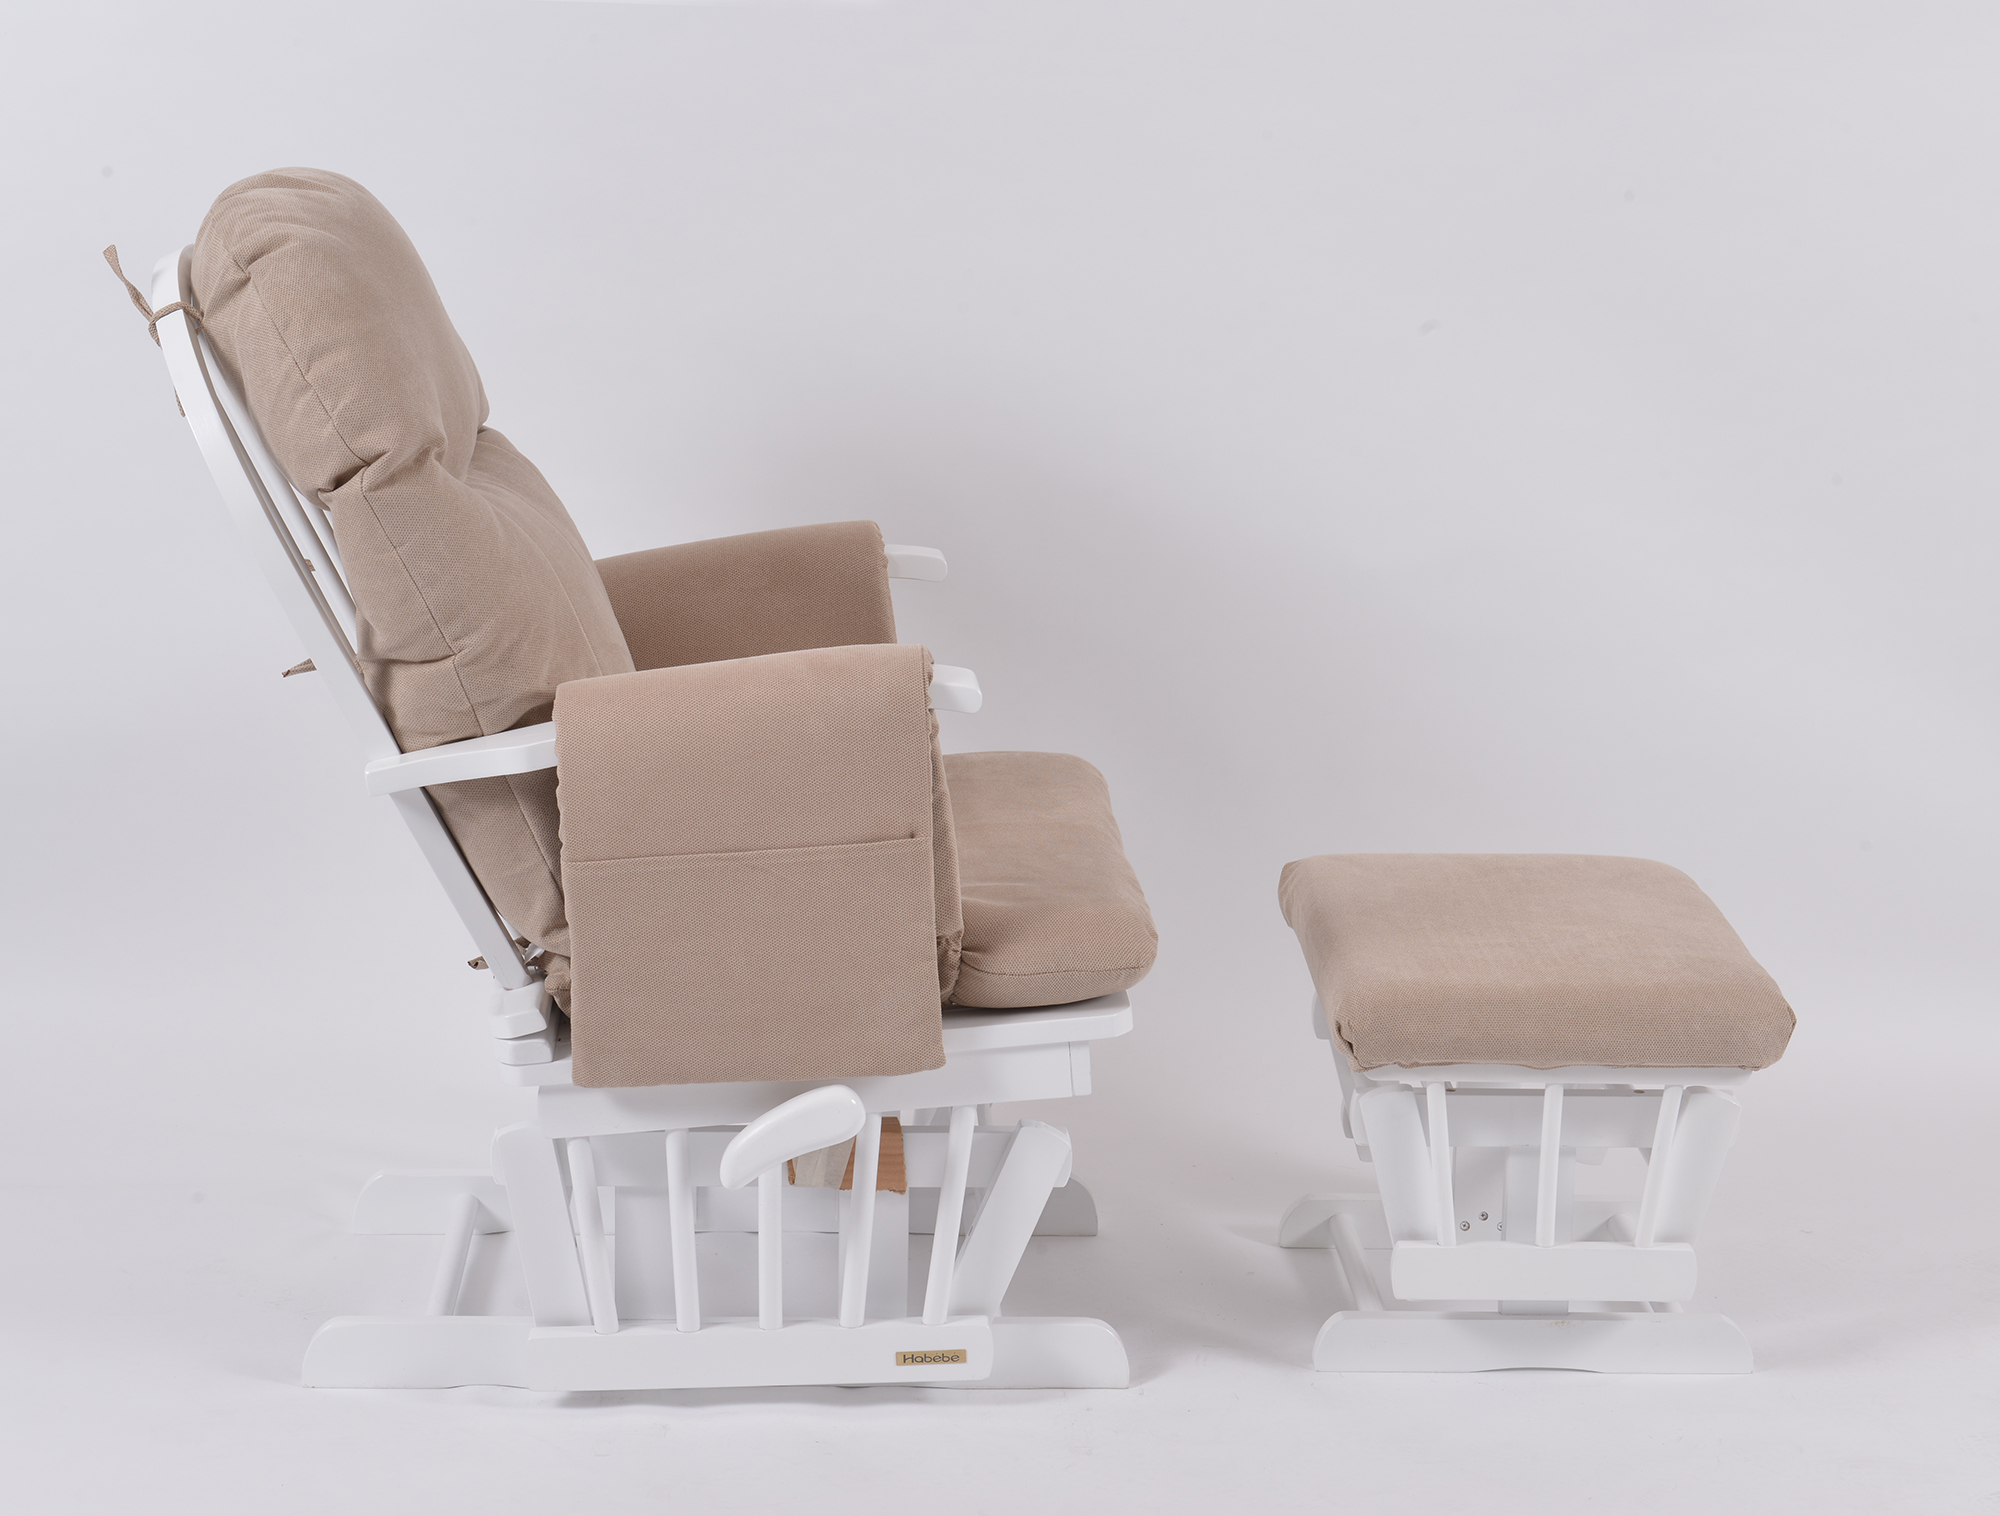 Habebe Glider Chair & Stool – White Wood & Beige Washable Covers